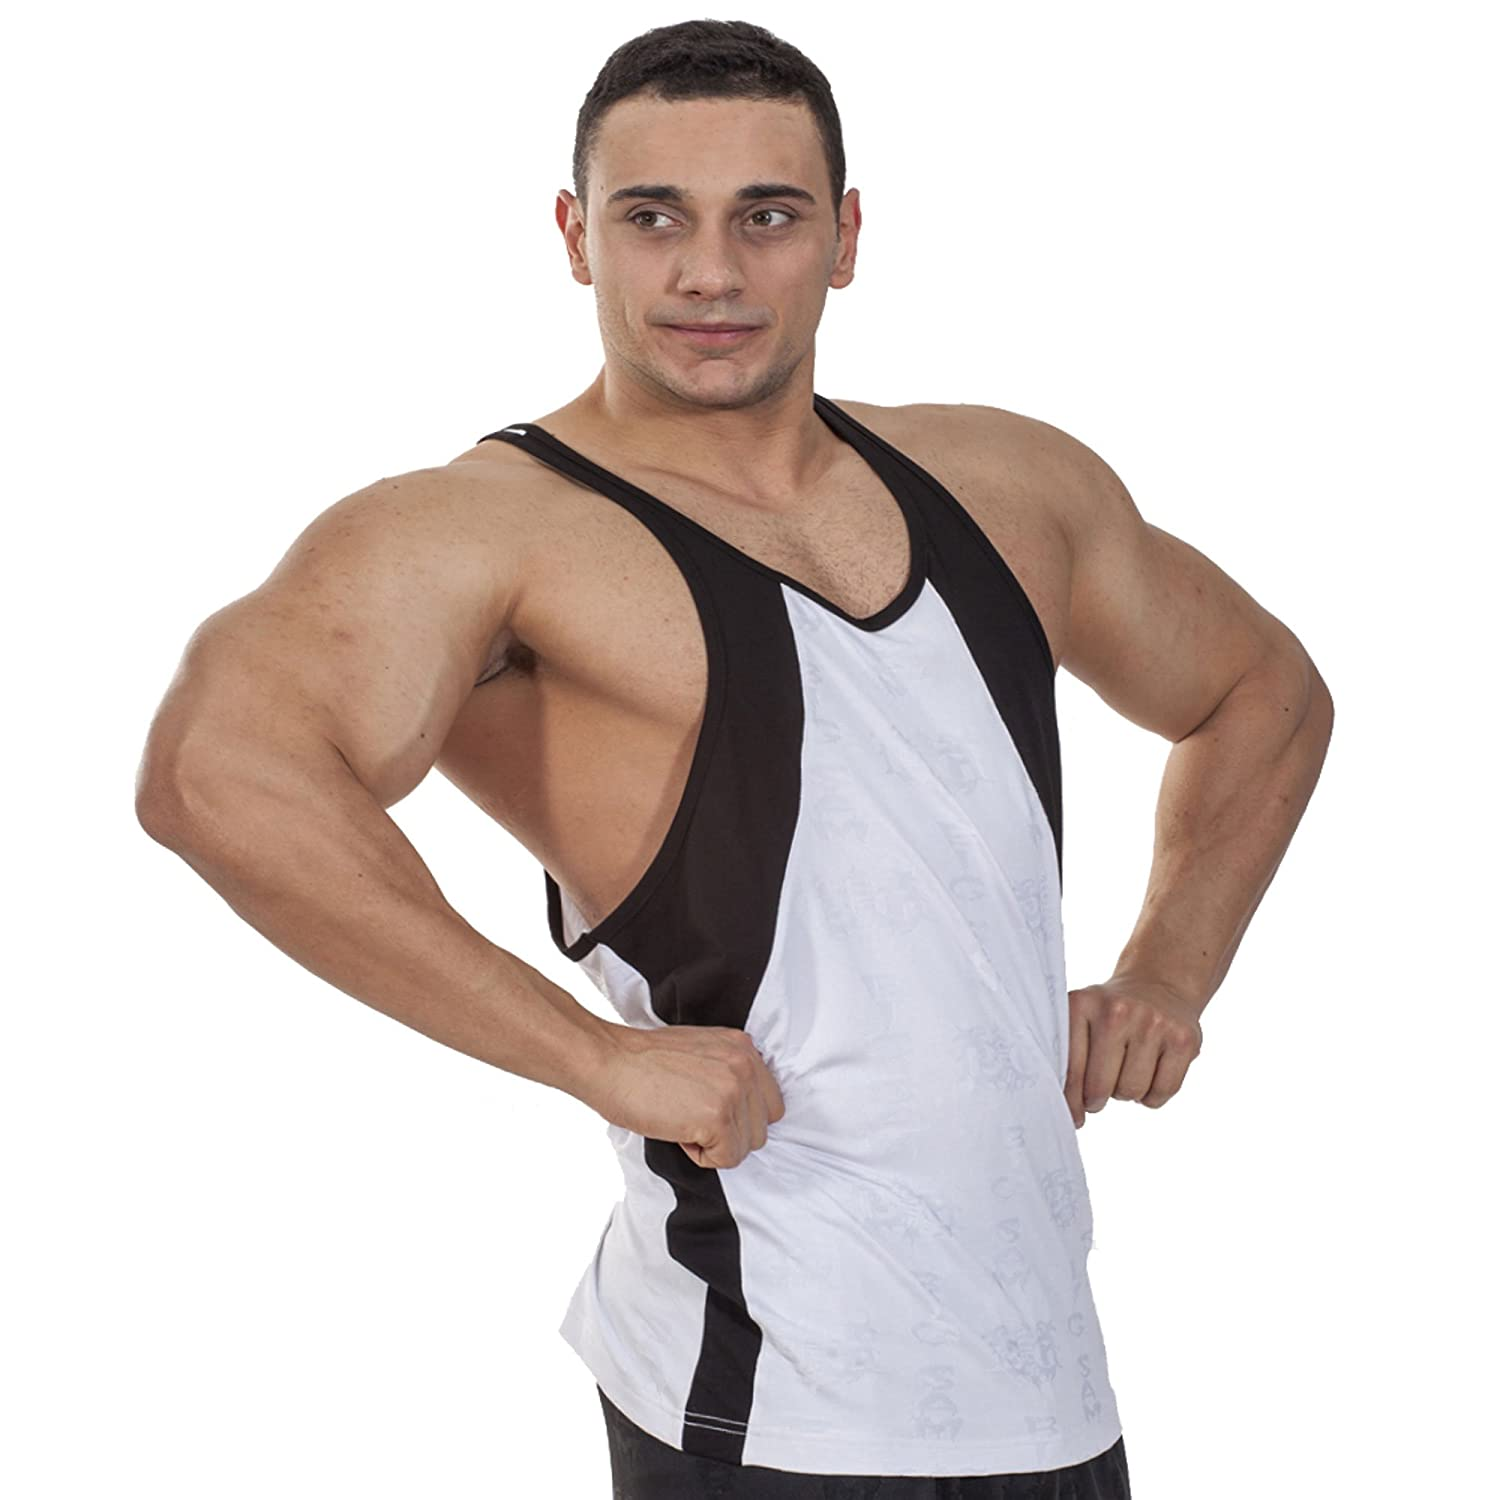 bde1418b264aaf BIG SAM SPORTSWEAR COMPANY Bodybuilding Men s Muscleshirt Tanktop T-Back  Tee Tank Stringer 2214 White at Amazon Men s Clothing store